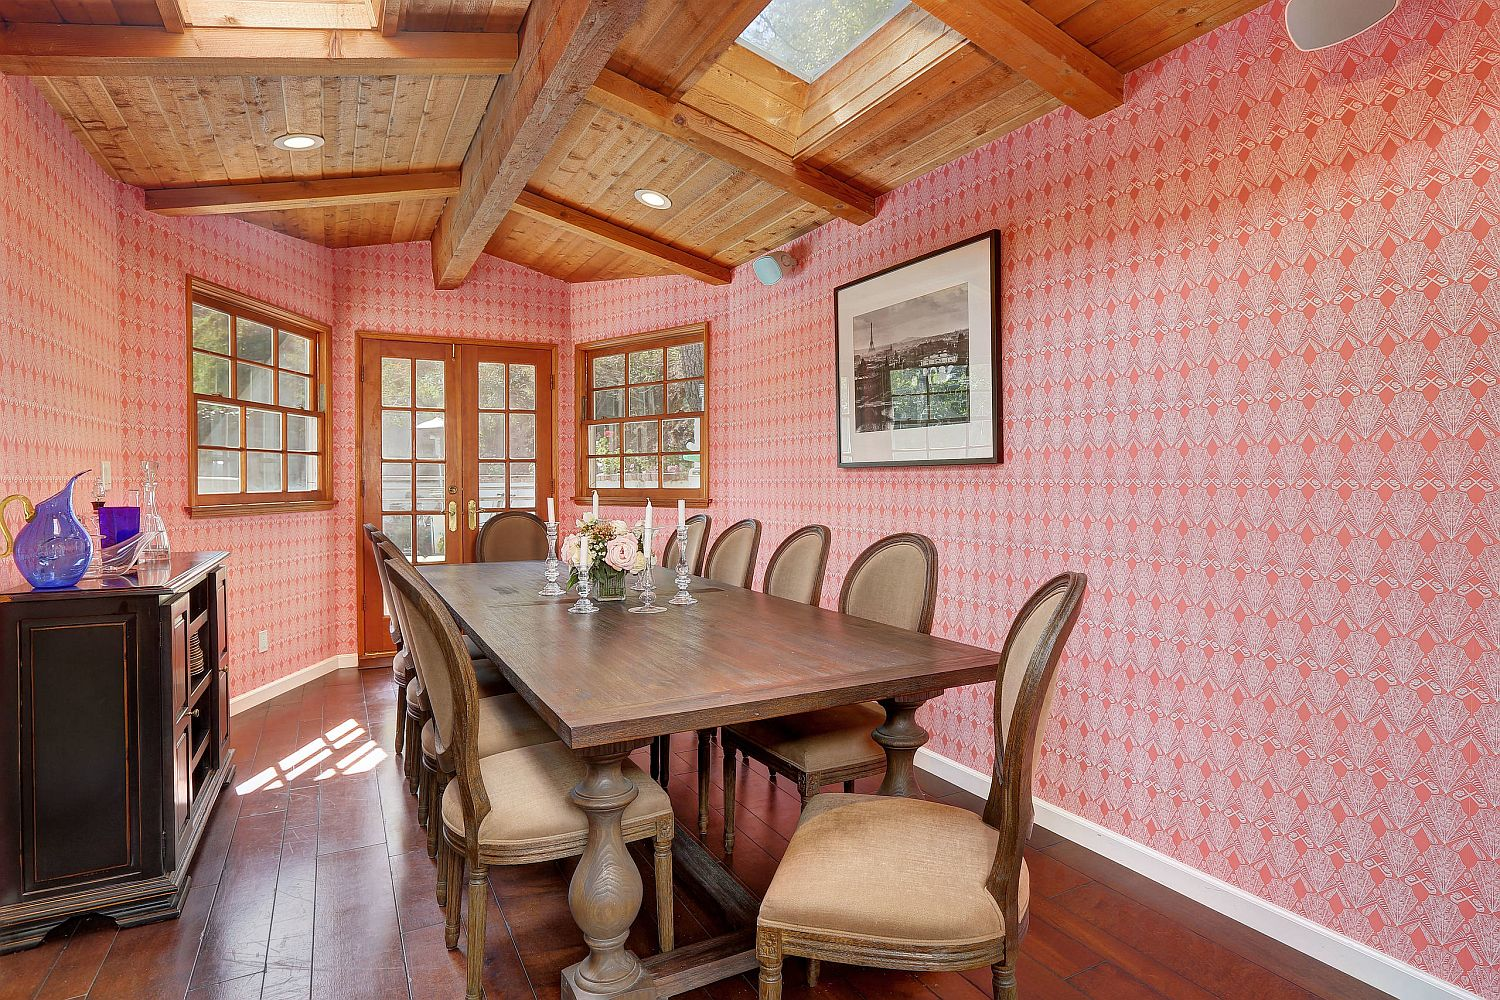 Pink-wallpaper-covers-the-walls-of-this-eclectic-modern-dining-room-with-wooden-ceiling